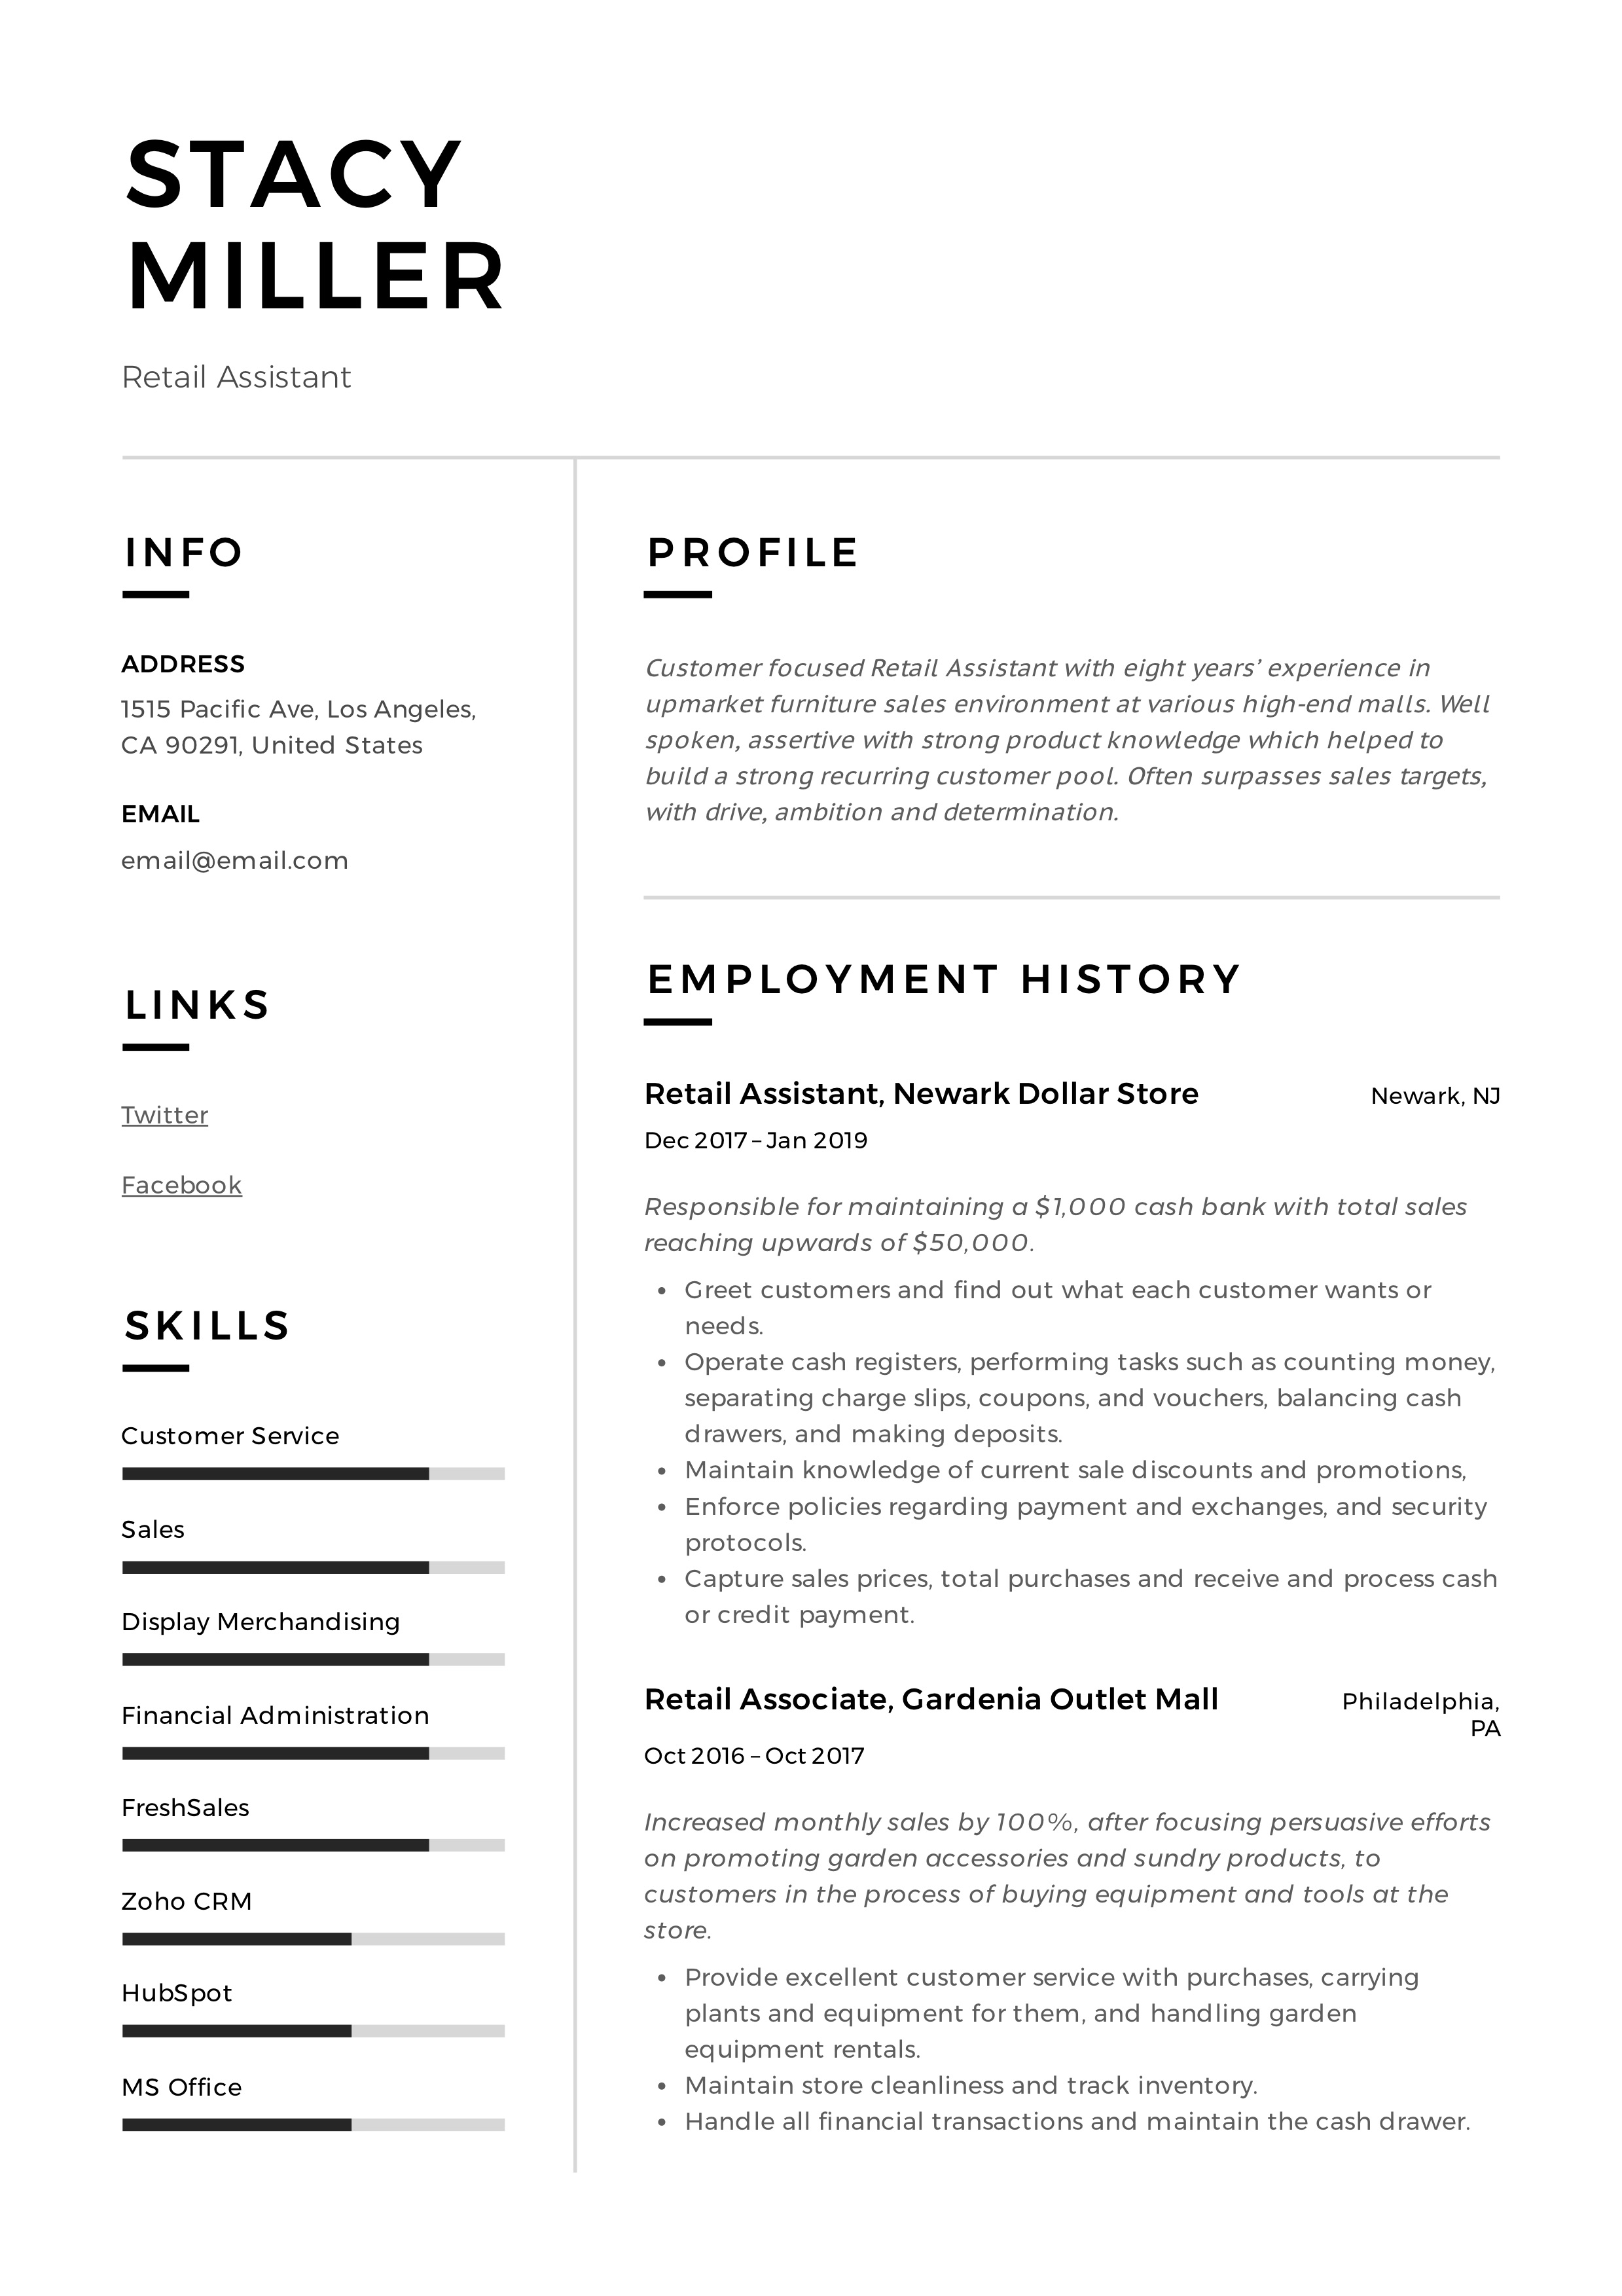 12 Retail Assistant Resume Samples Amp Writing Guide